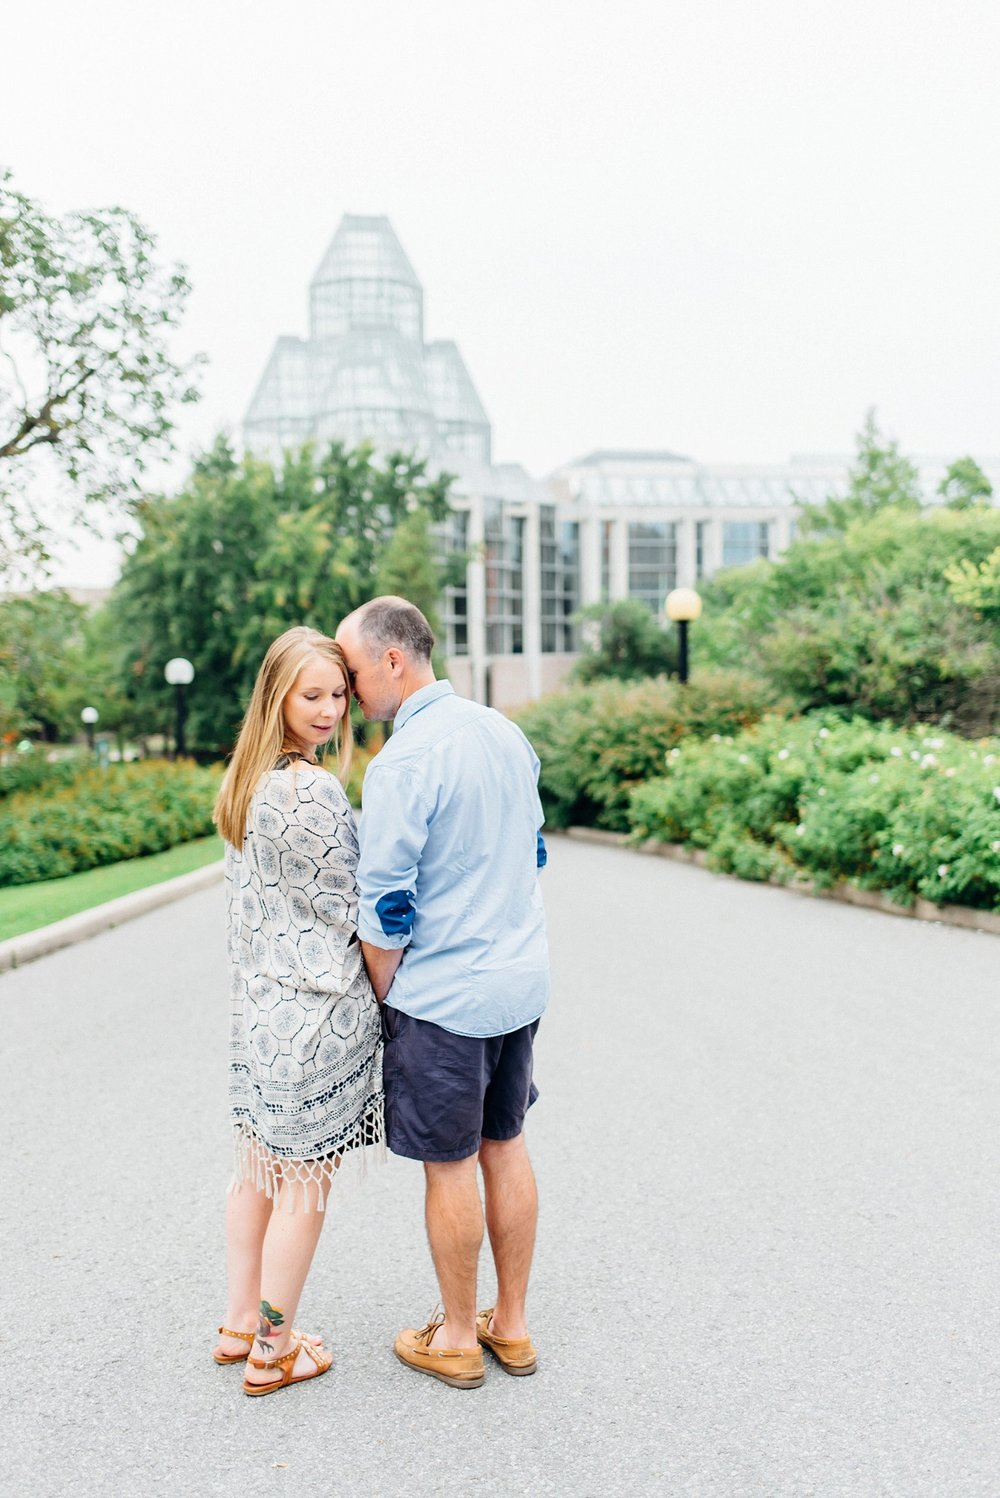 Liz + Ryan Engagement | Ali & Batoul Photography-47.jpg